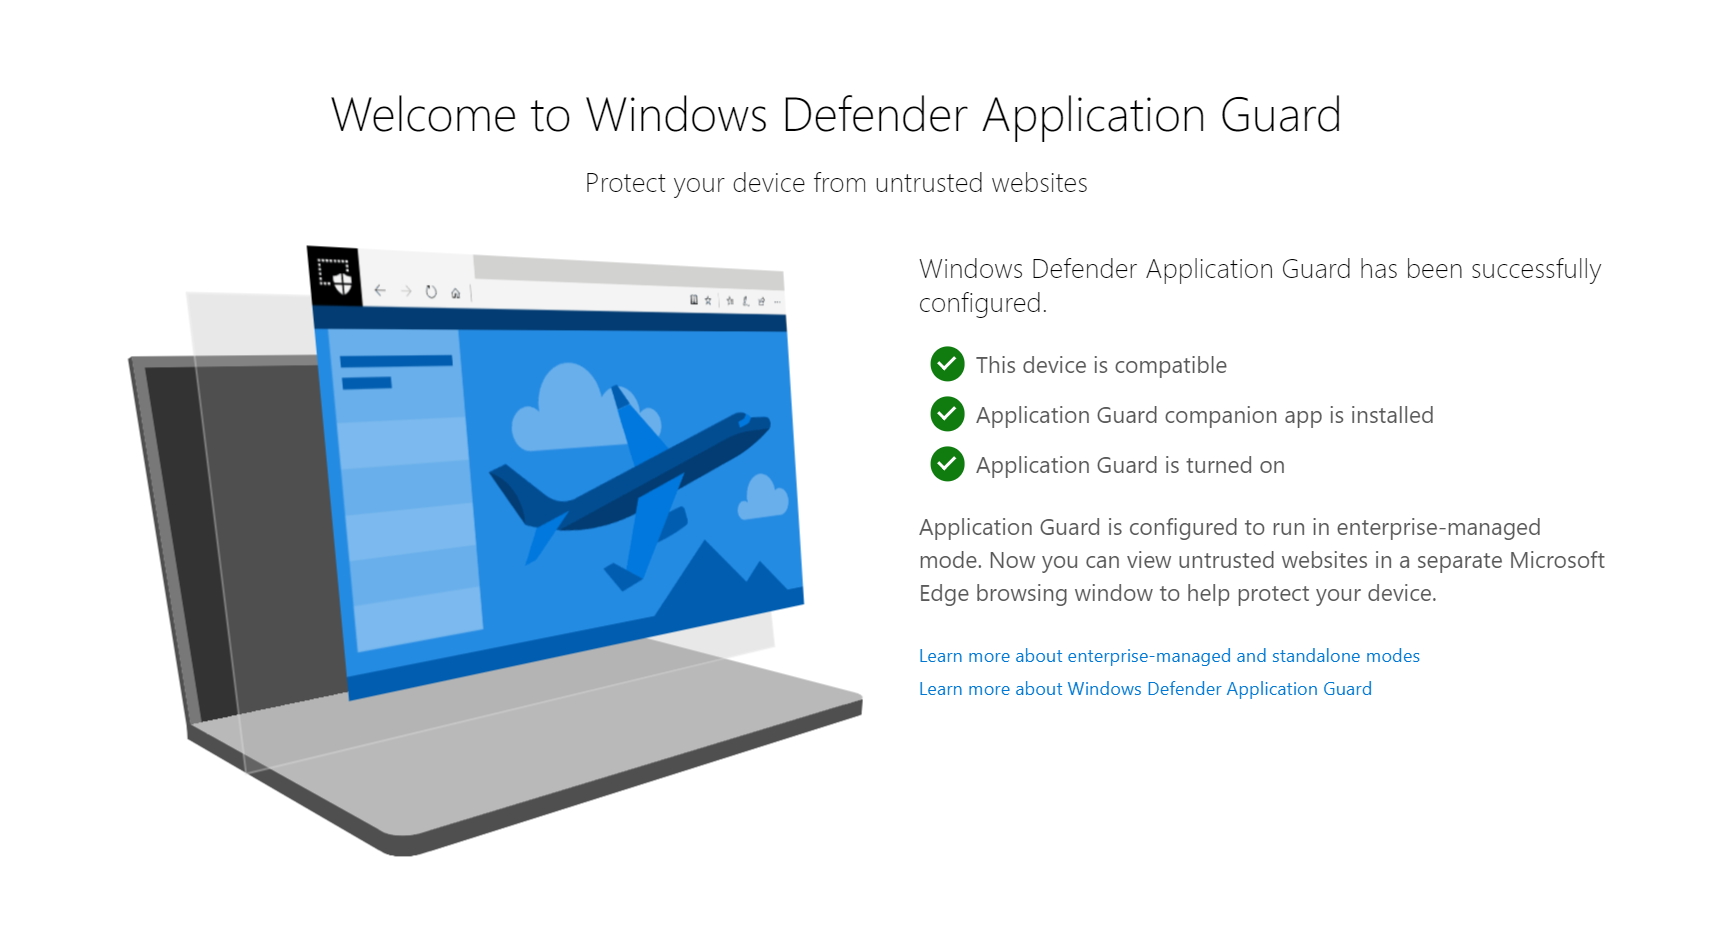 Open New Application Guard Window in Microsoft Edge windows-defender-application-guard-components-complete.png